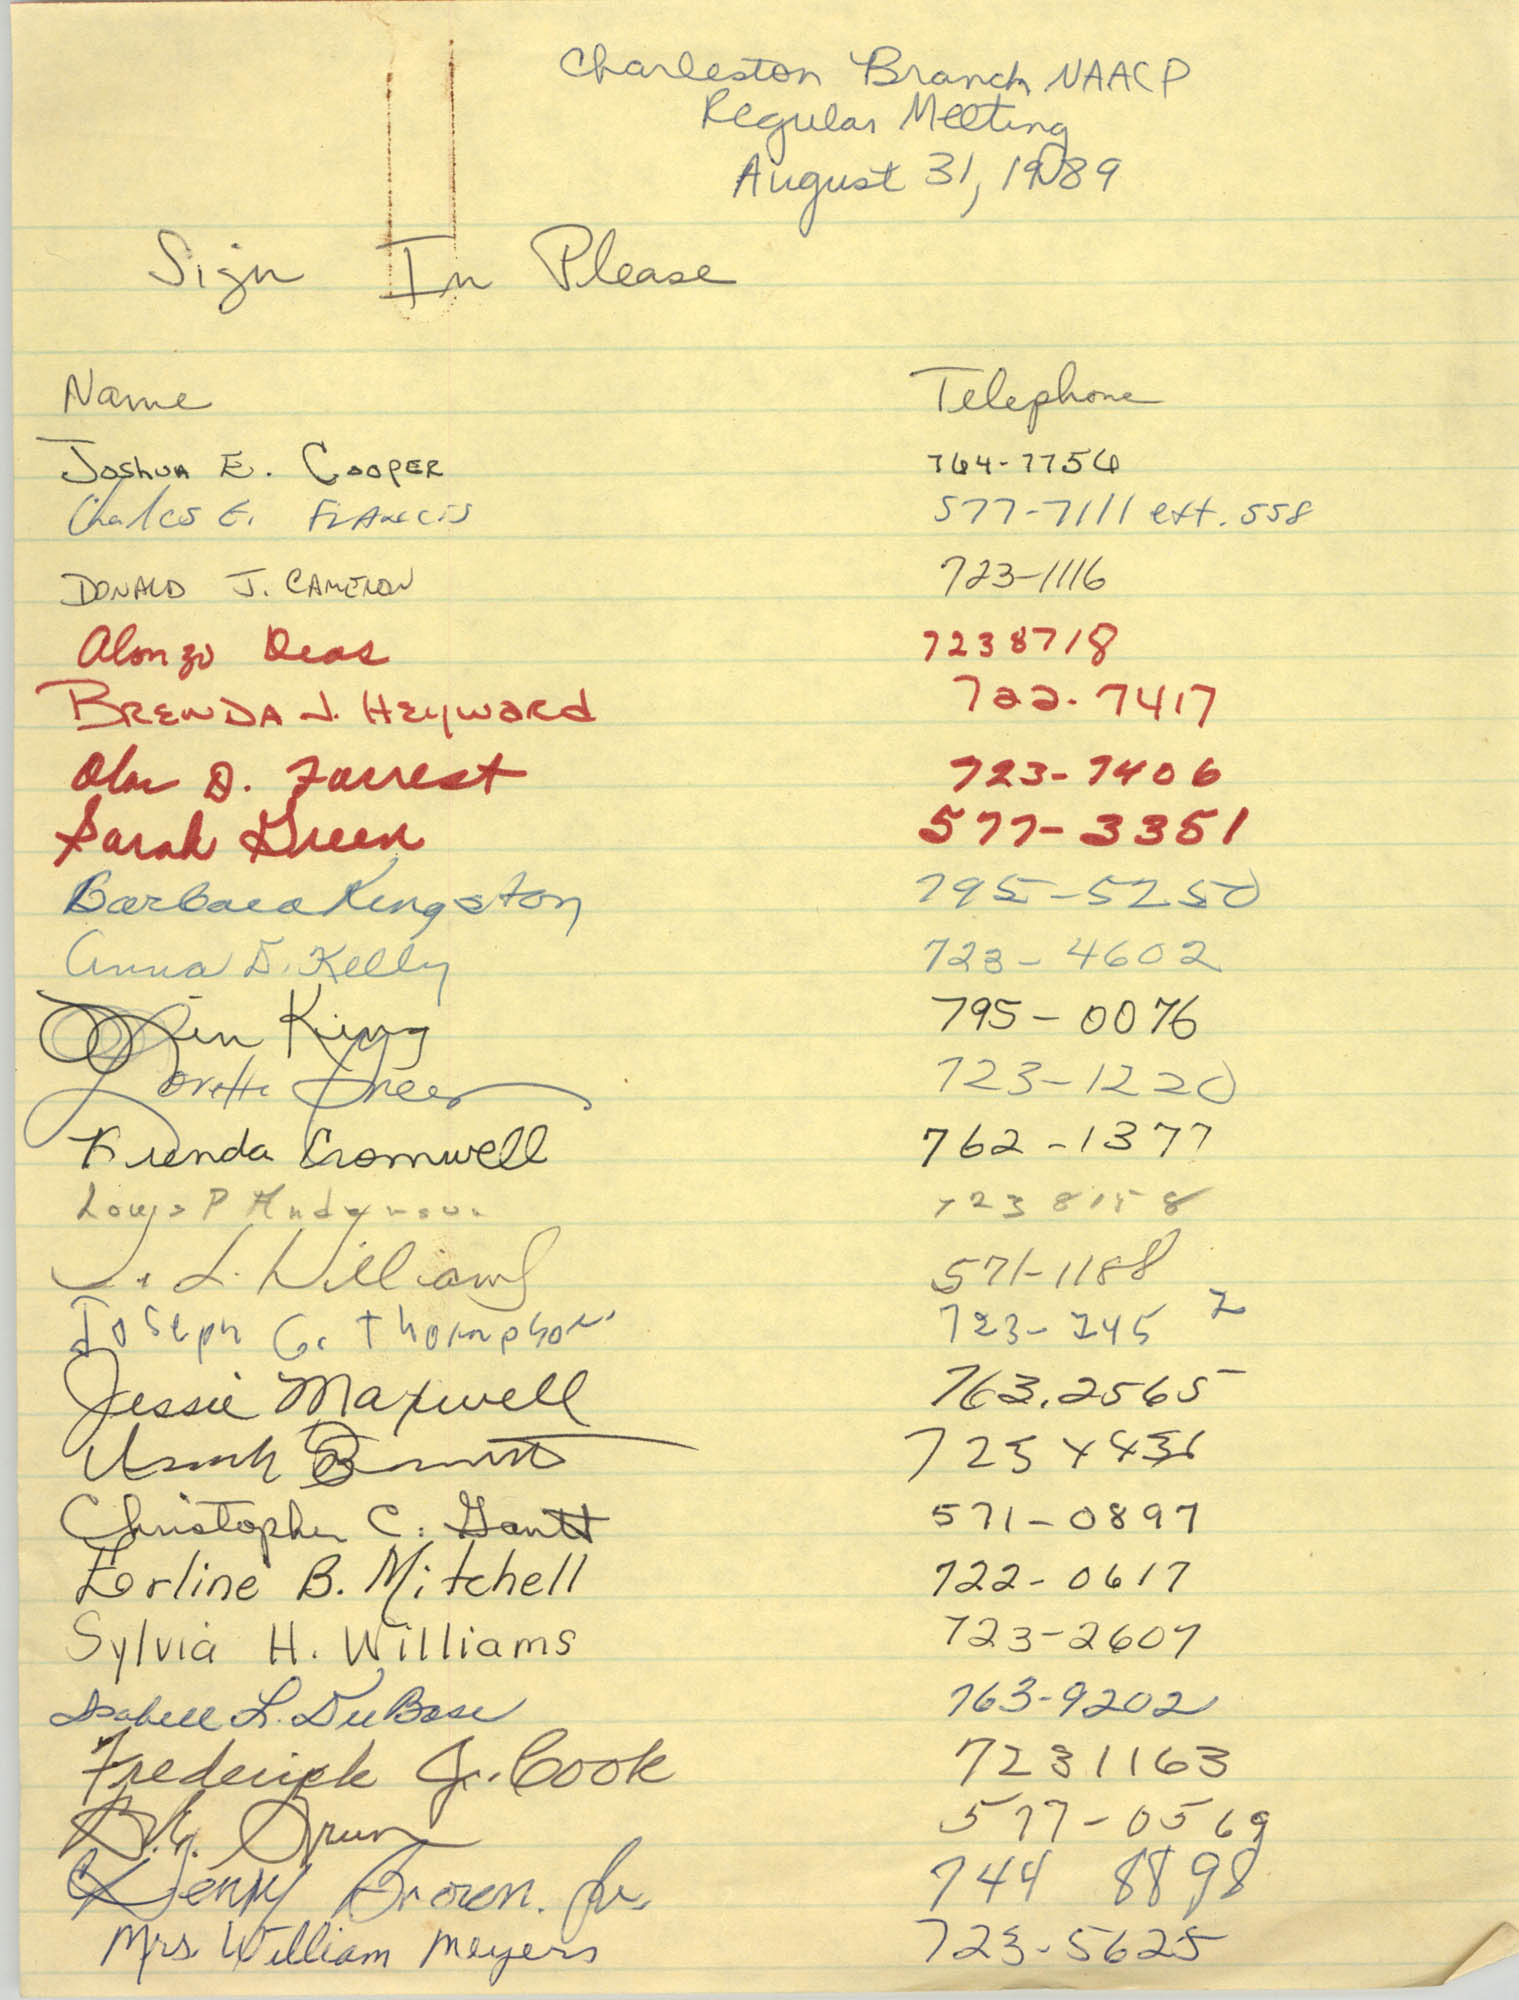 Sign-in Sheet, Charleston Branch of the NAACP, Executive Board Meeting, August 31, 1989